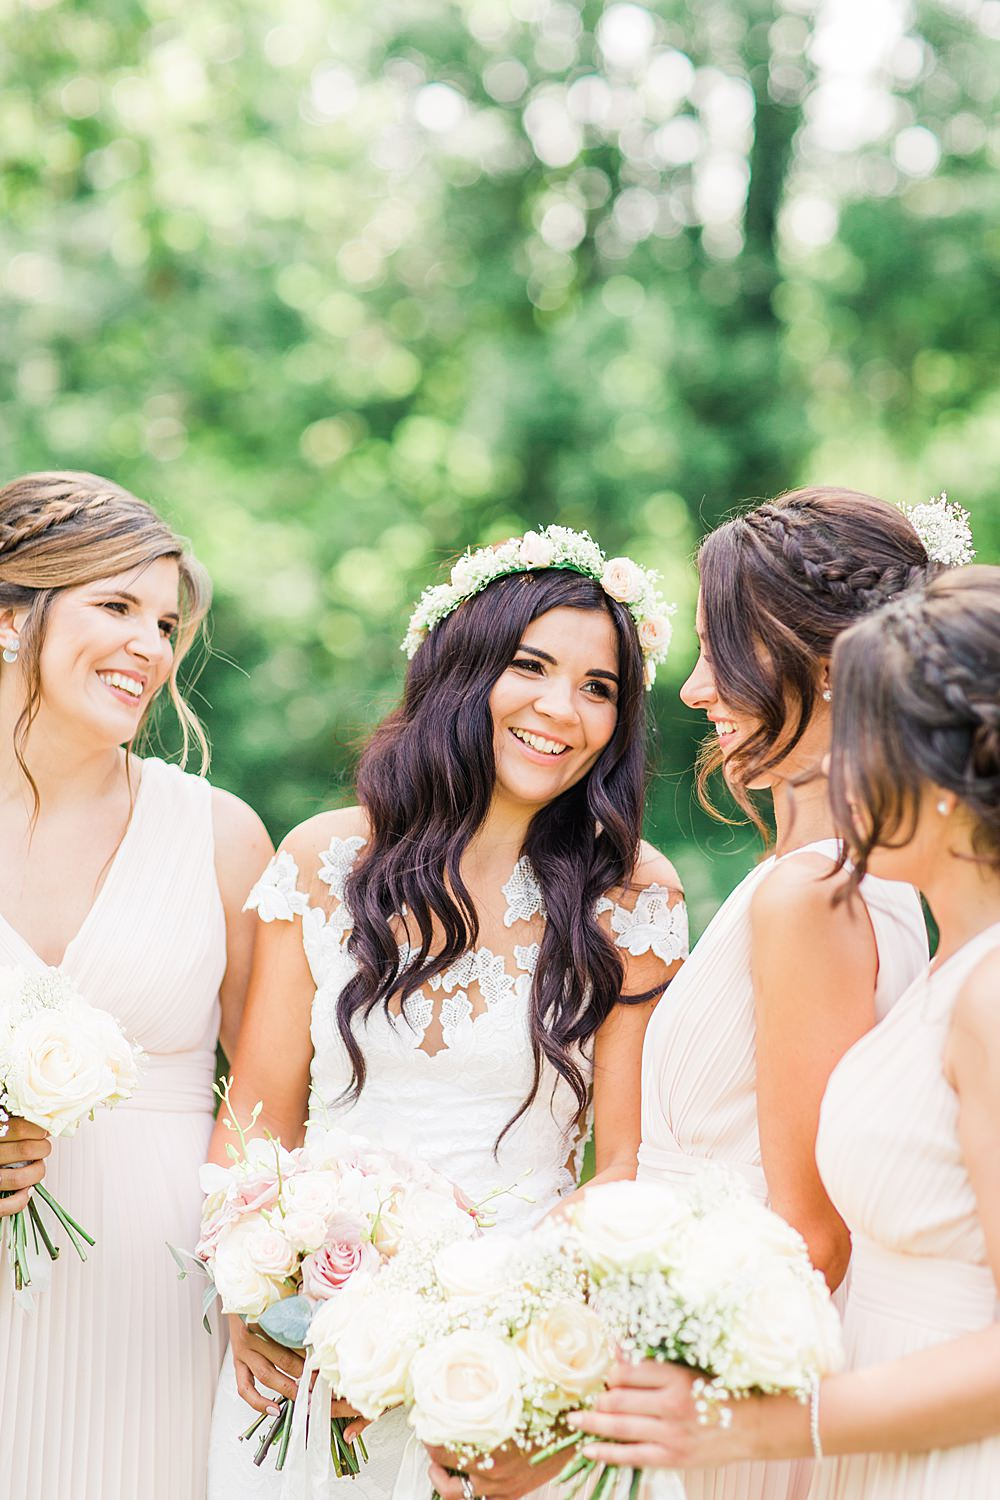 Bride Bridal Bridesmaids Hair Style Up Do Sheene Mill Wedding Terri & Lori Photography and Film Studio